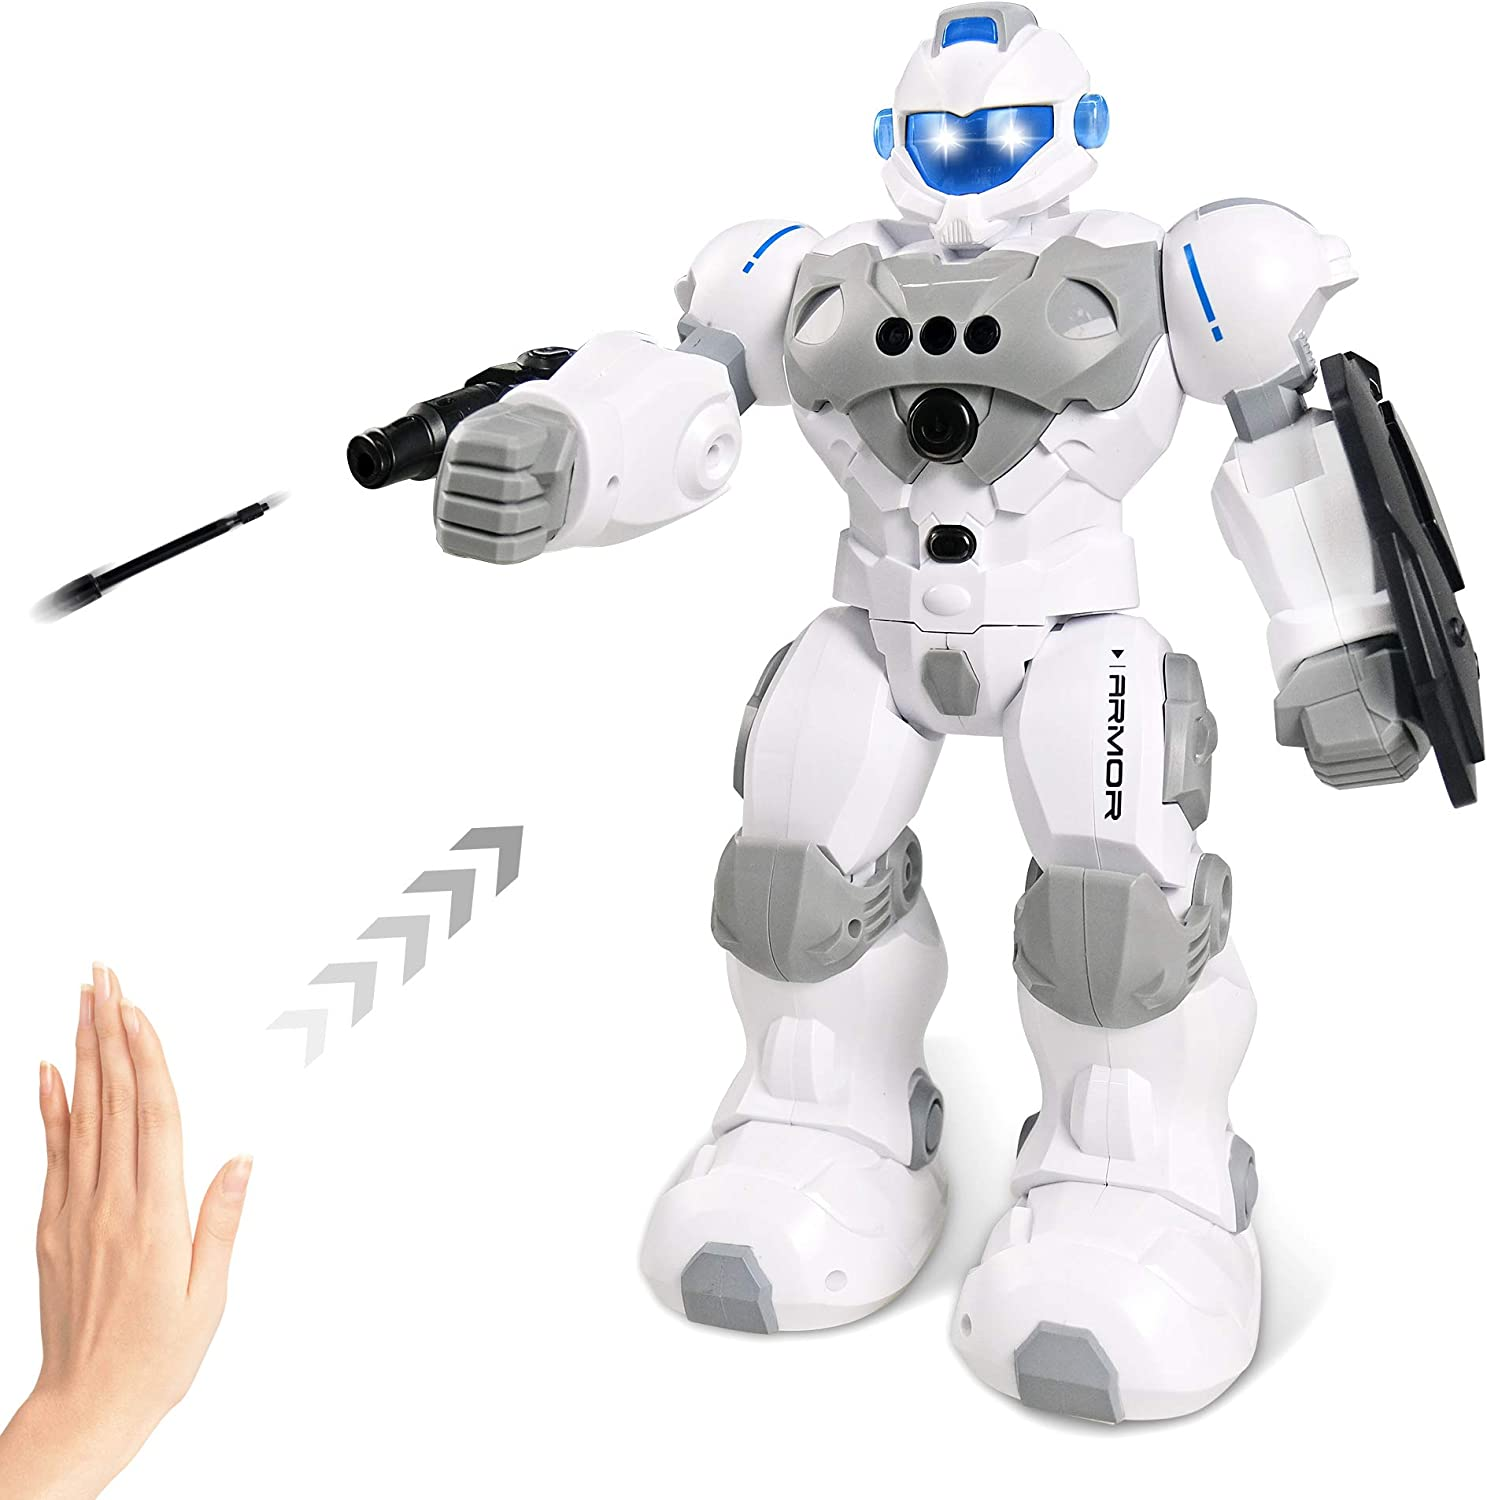 Intelligent Gesture Robot Toy, RC Robot Rechargeable with Protective Shield & Launcher, Remote Control Programmable Robotic with Interactive Singing Dancing Gesture Sensing Robot